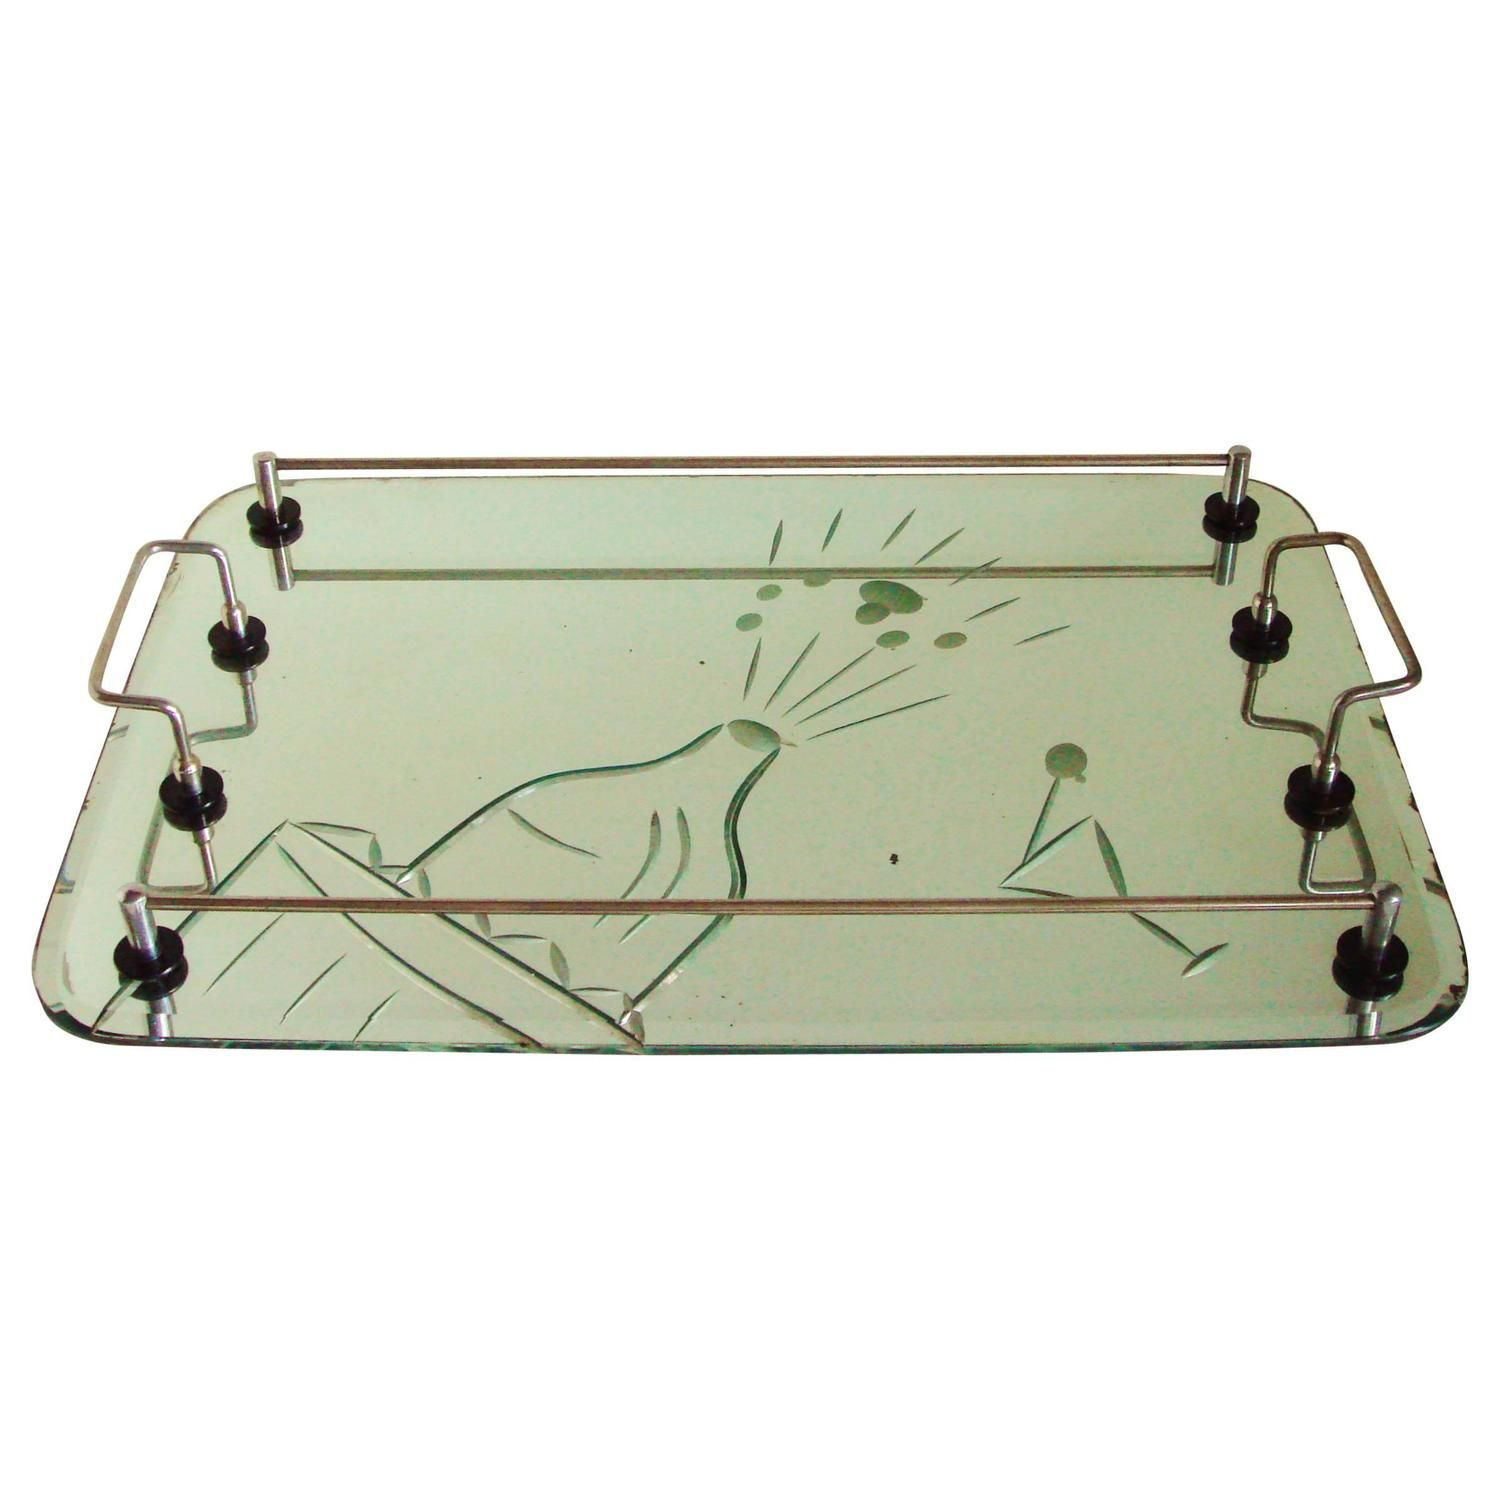 Australian Art Deco Etched and Bevelled Mirror Cocktail Tray with Chrome Gallery | From a unique collection of antique and modern barware at https://www.1stdibs.com/furniture/dining-entertaining/barware/